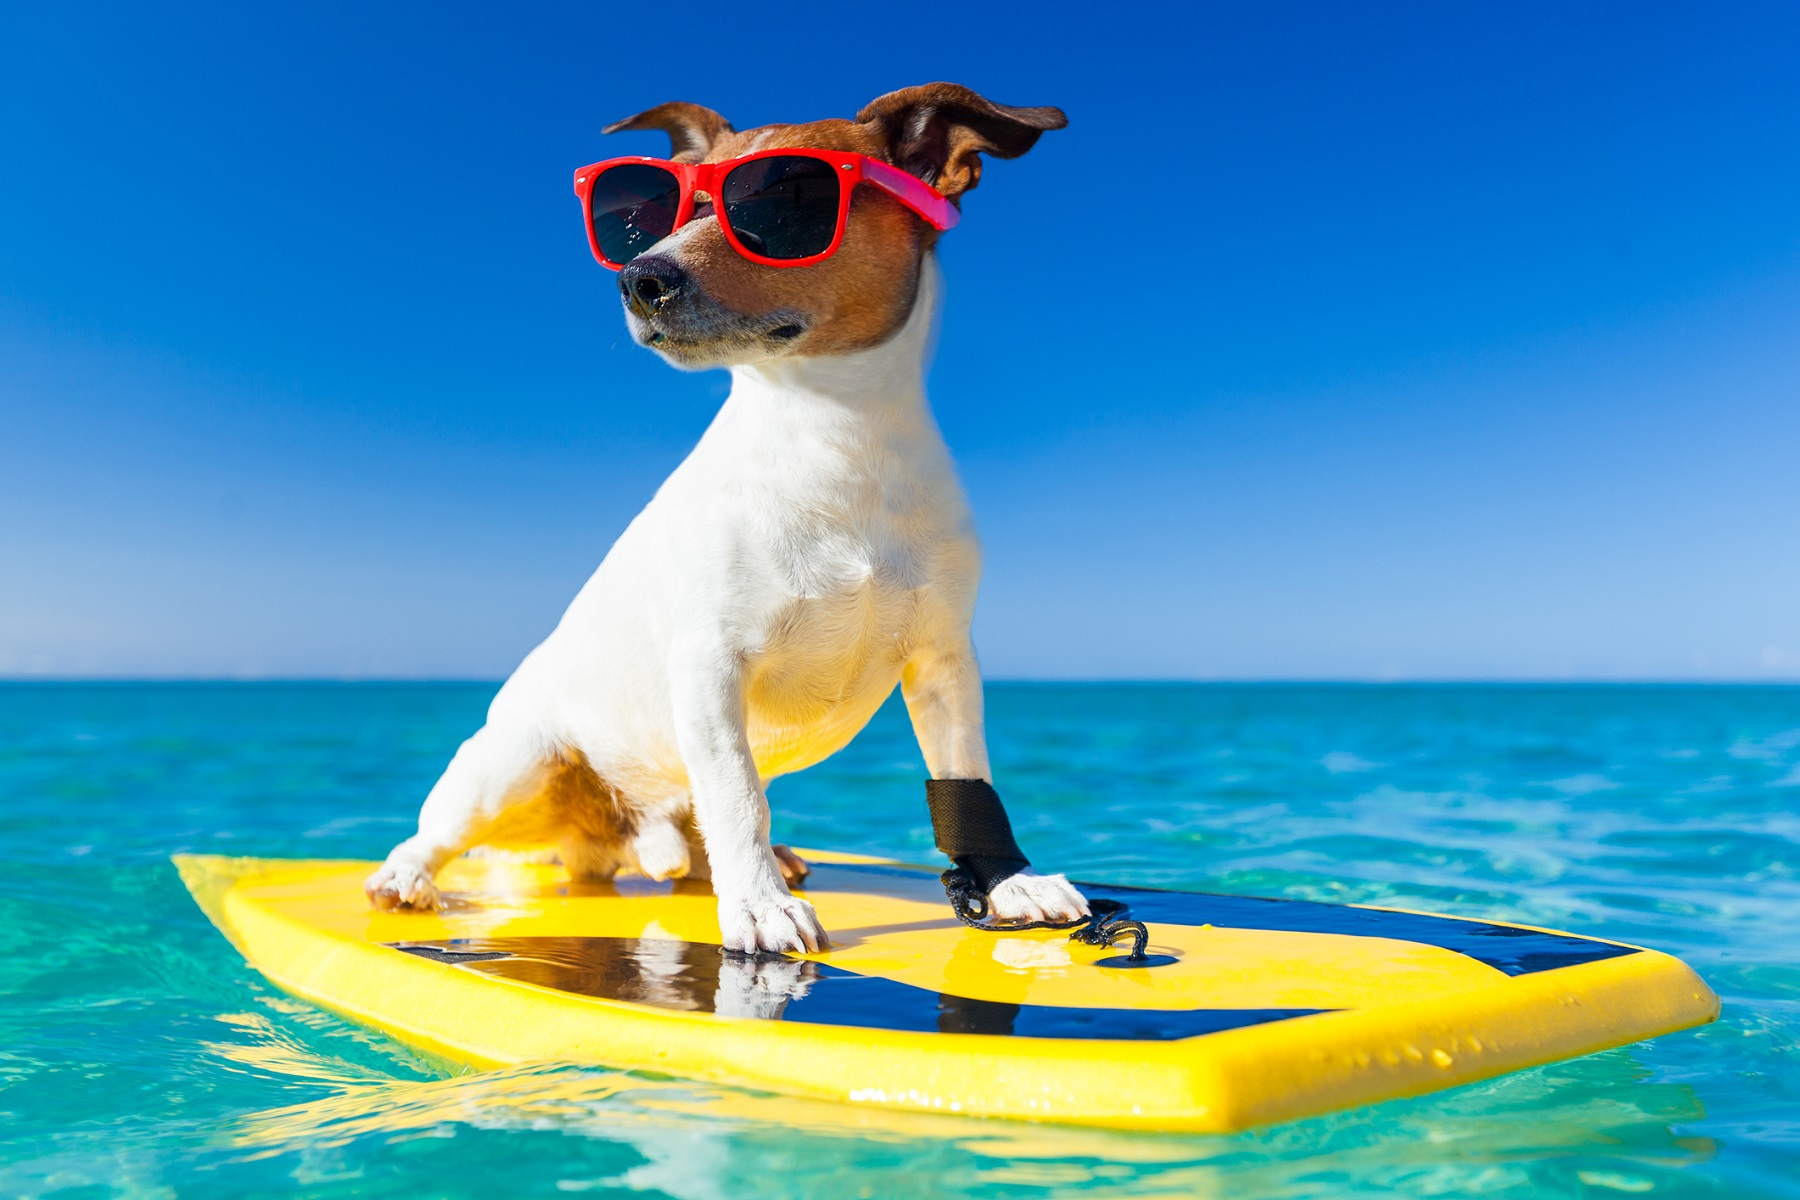 cool summer surfer dog